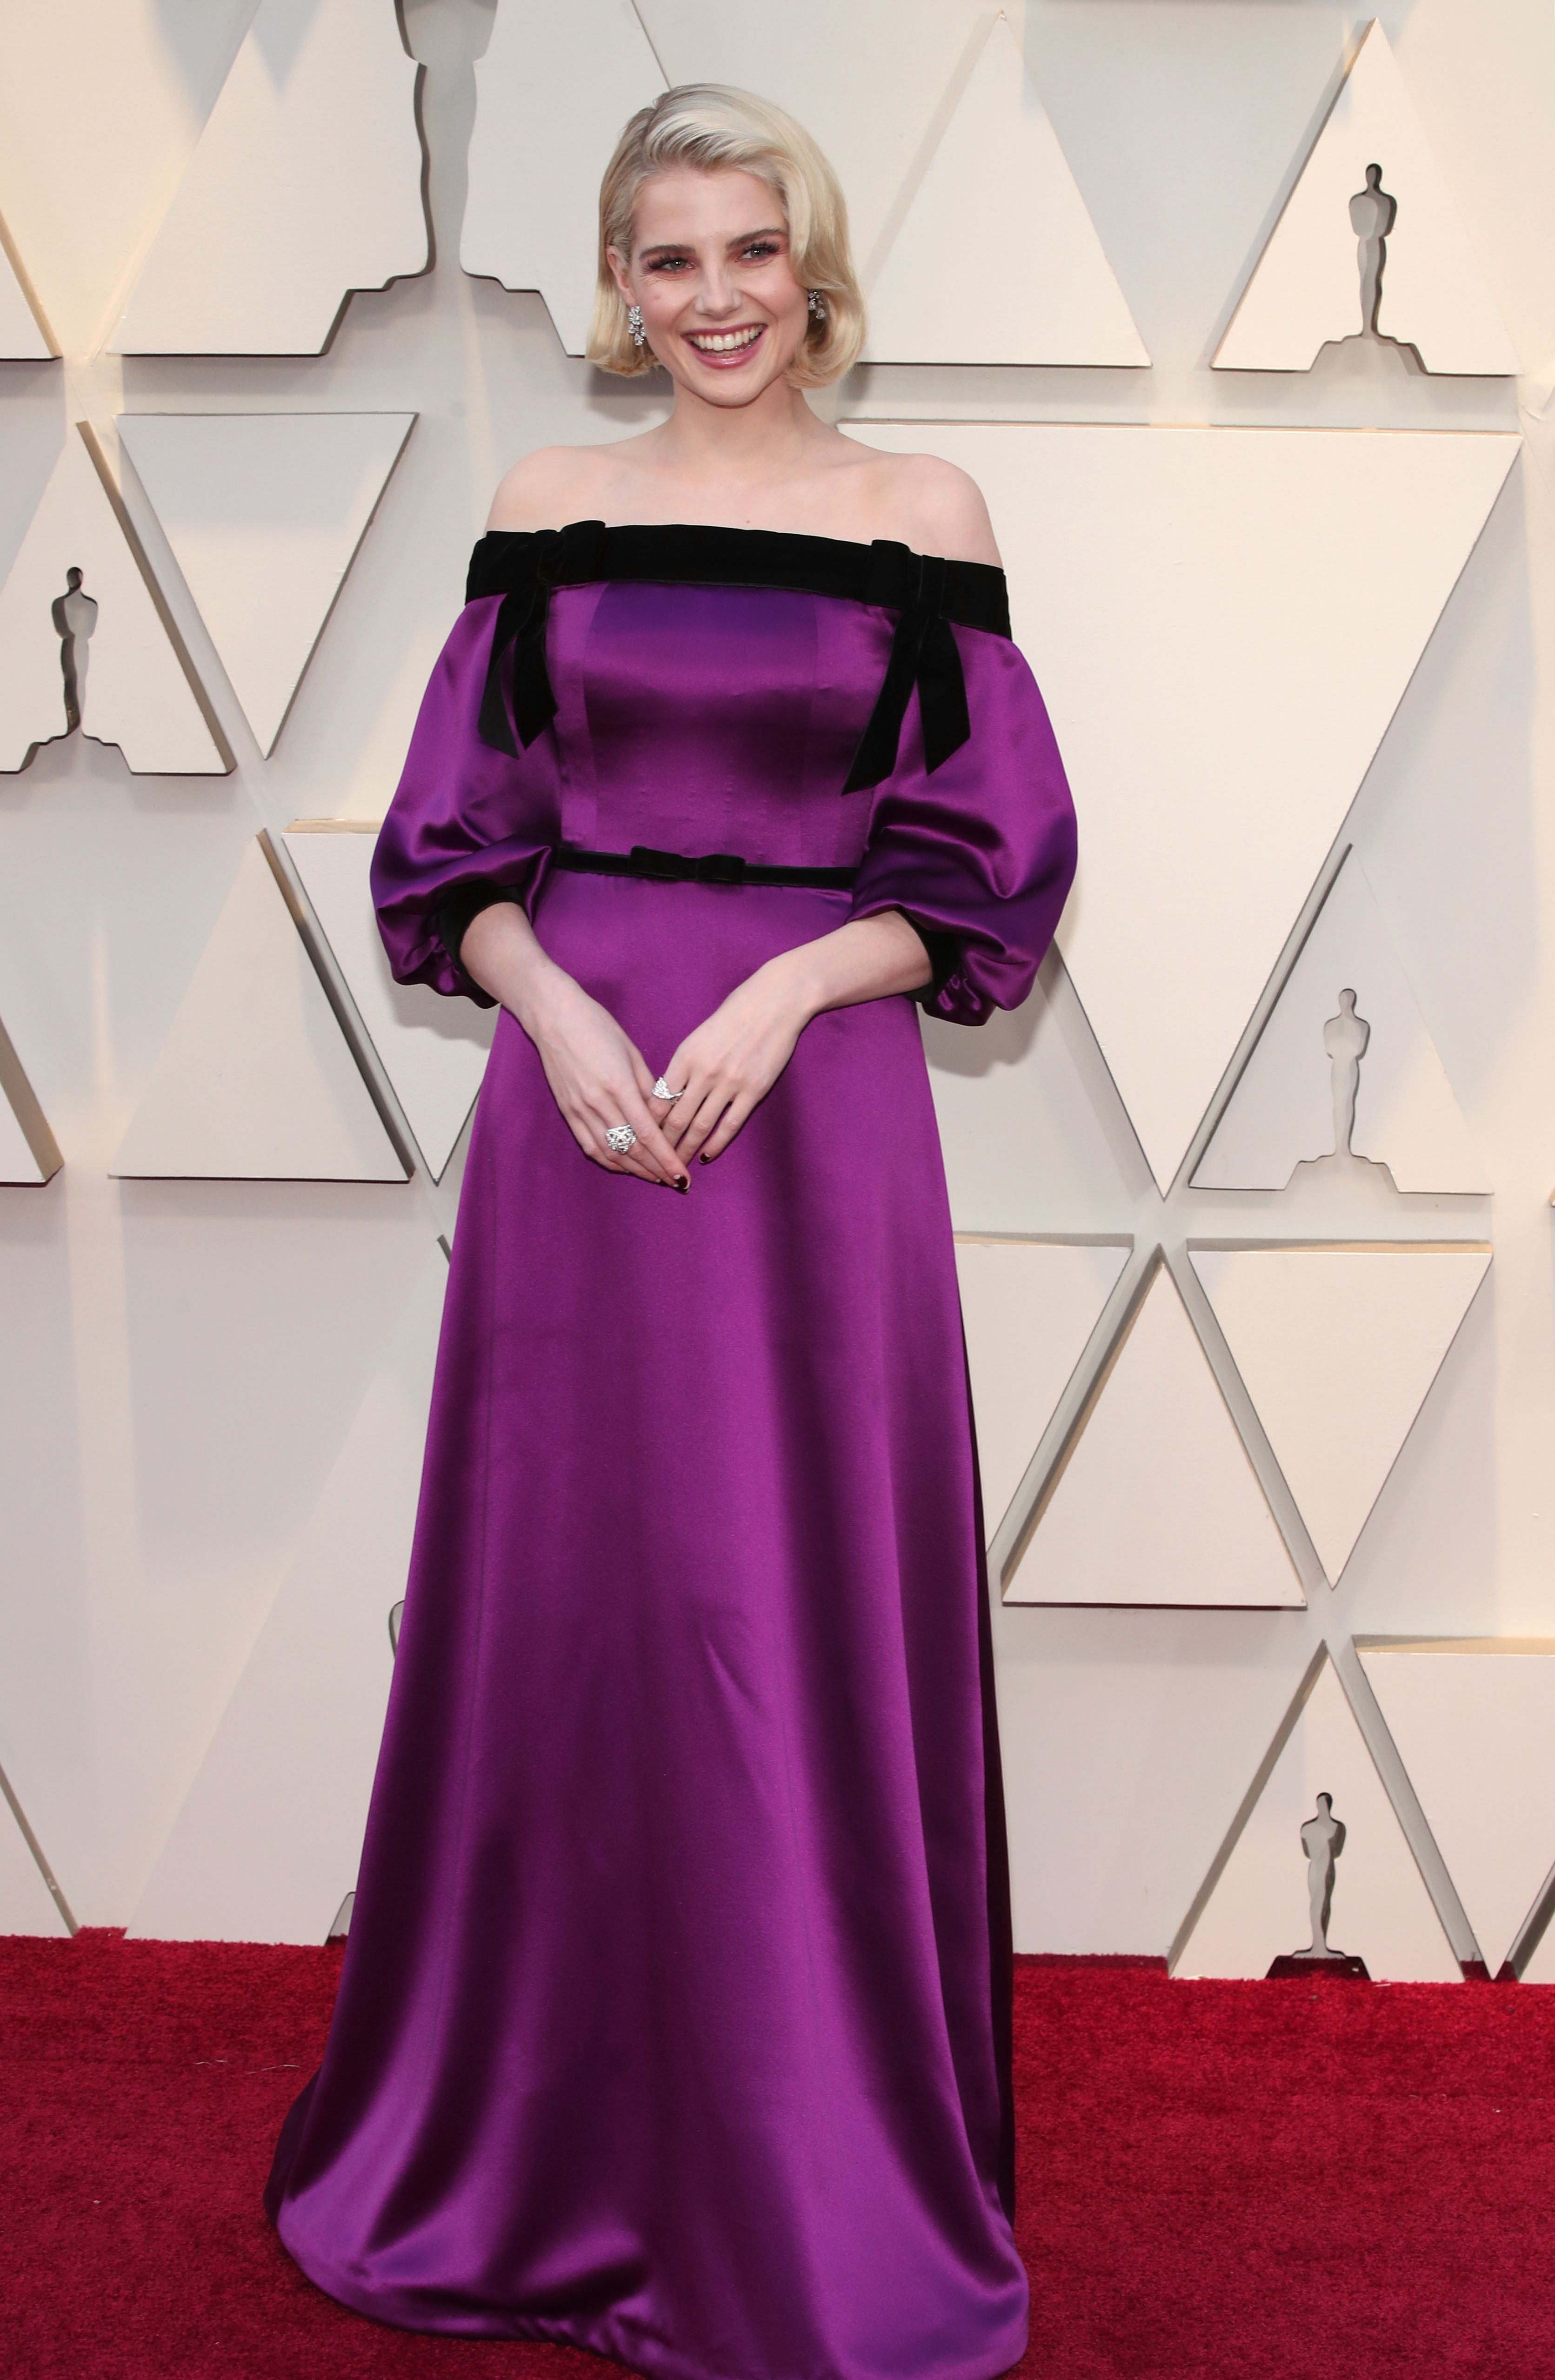 shutterstock 10113255jl Lucy Boyntons Oscars Look Will Inspire You to Whip Out Your Favorite Off the Shoulder Pieces